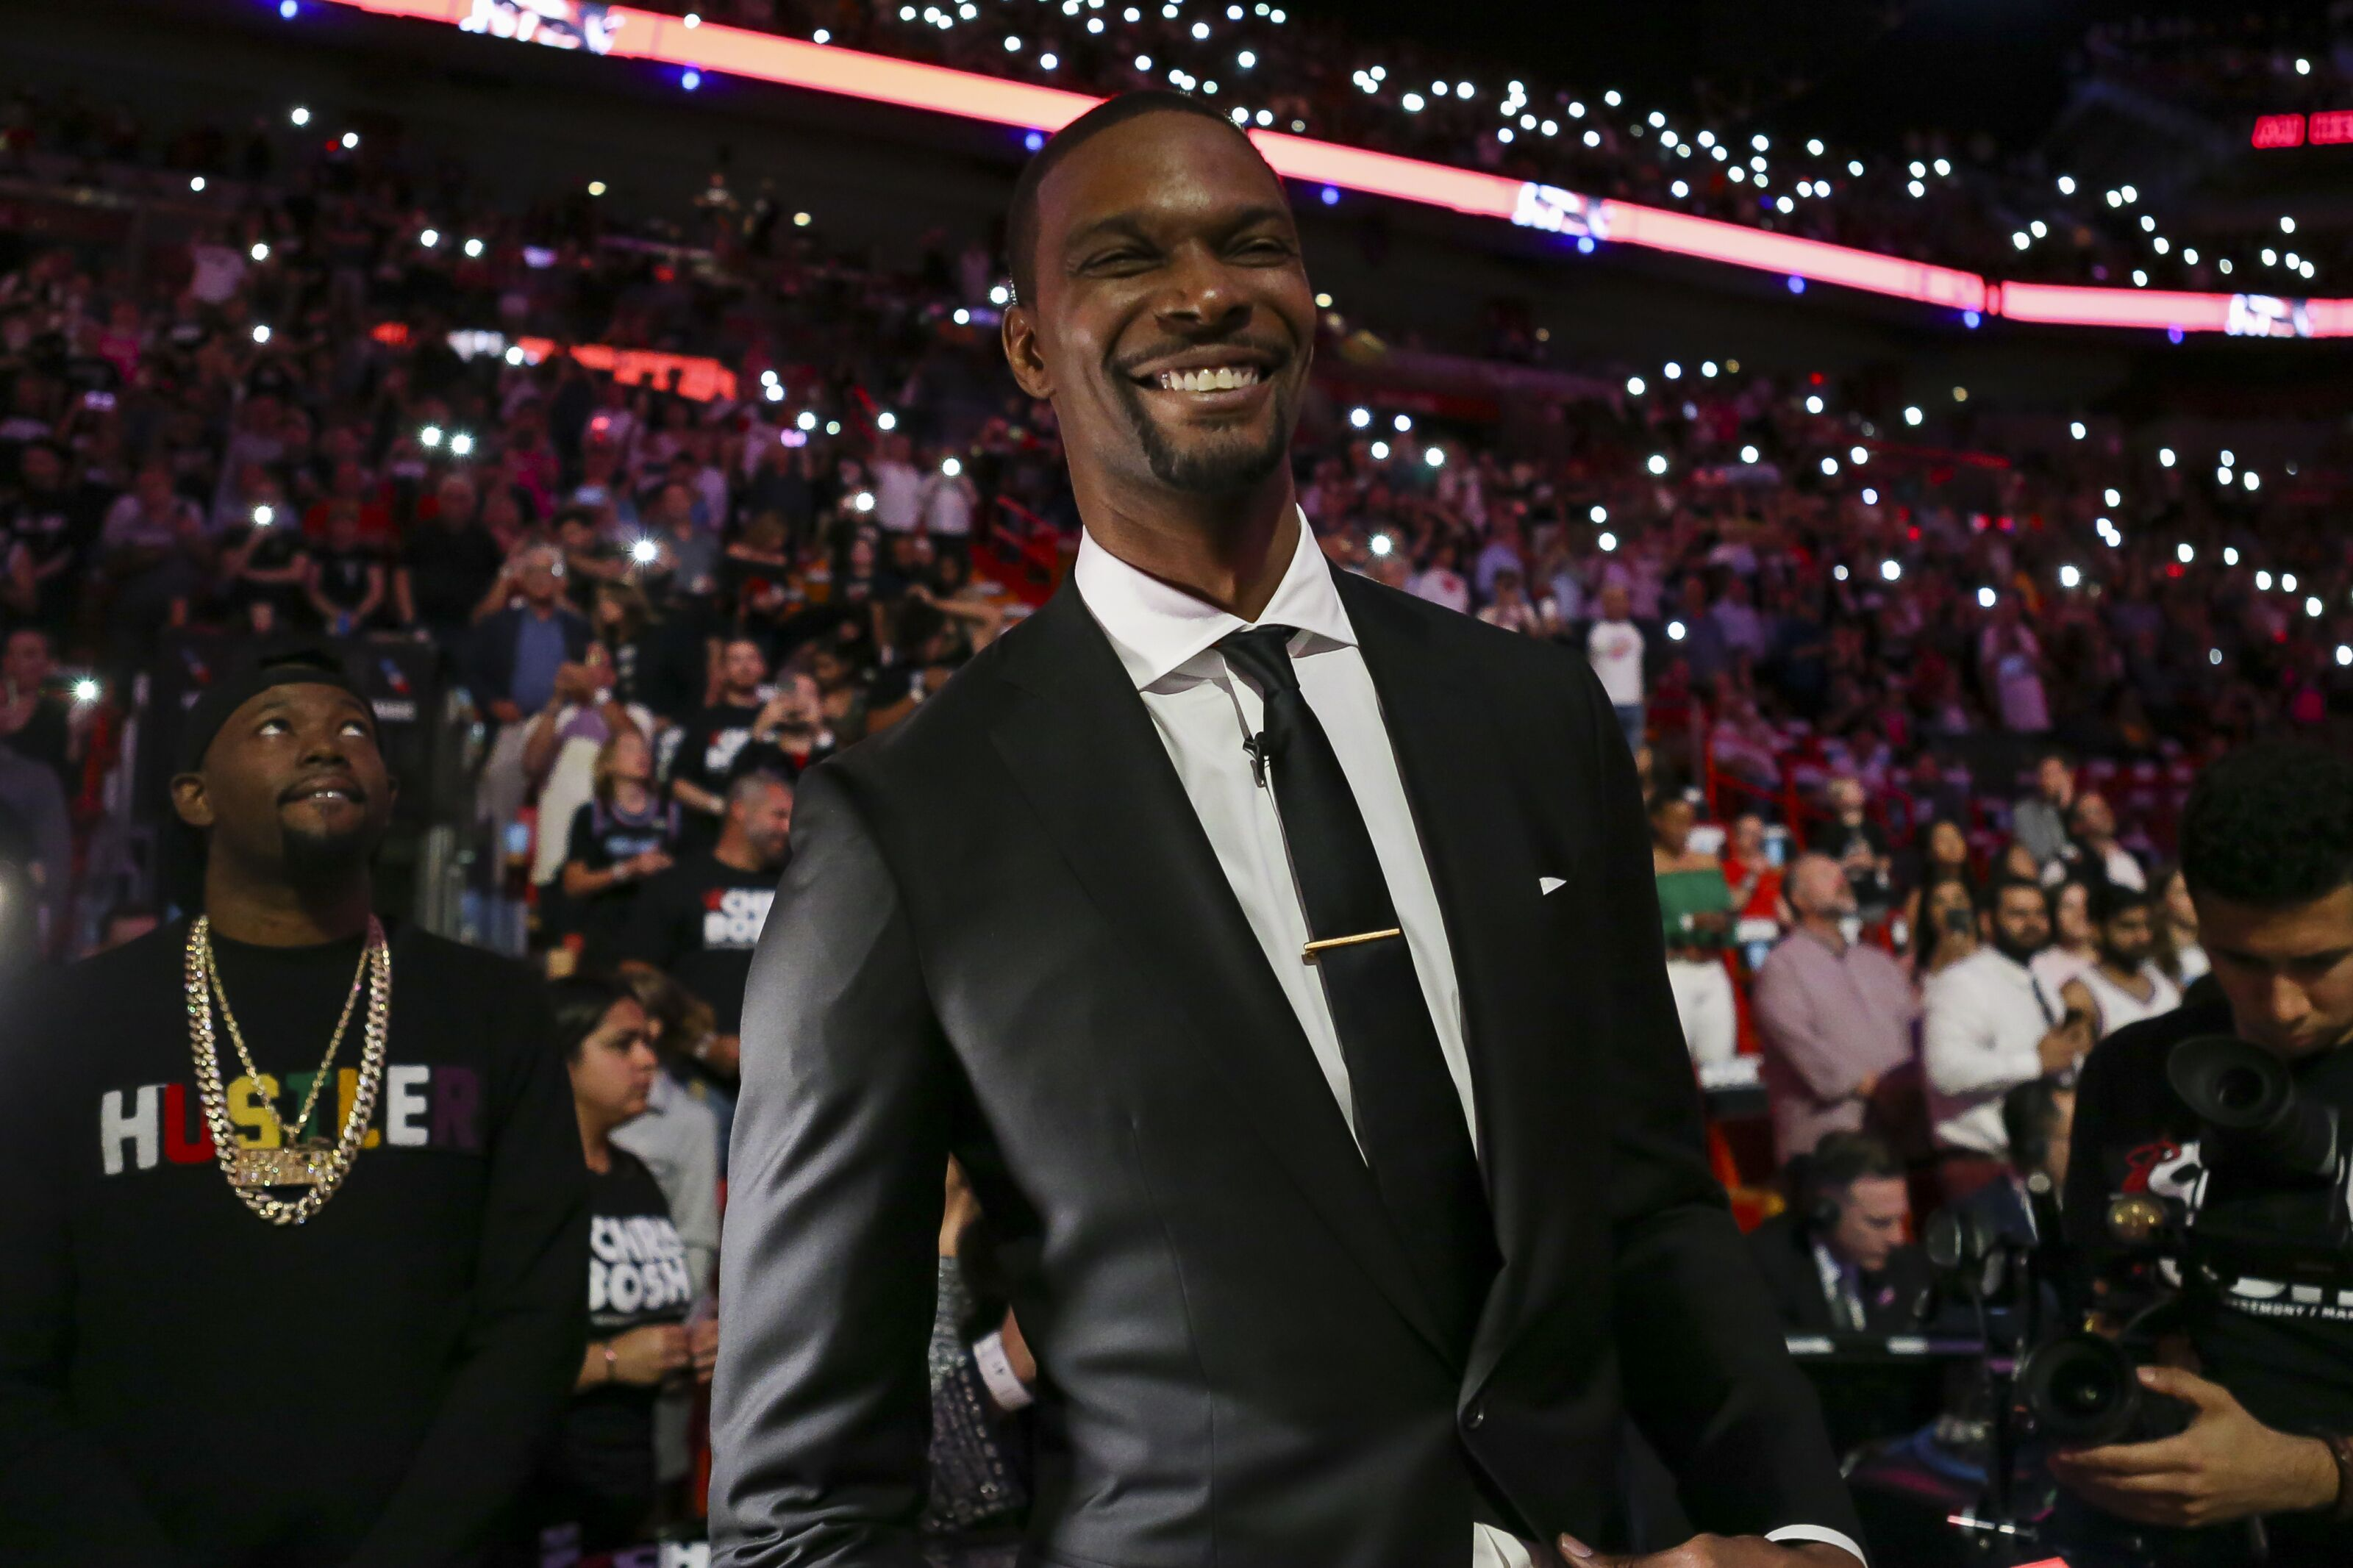 eb80538ccc2 Miami Heat: Chris Bosh's retirement ceremony came at the perfect time